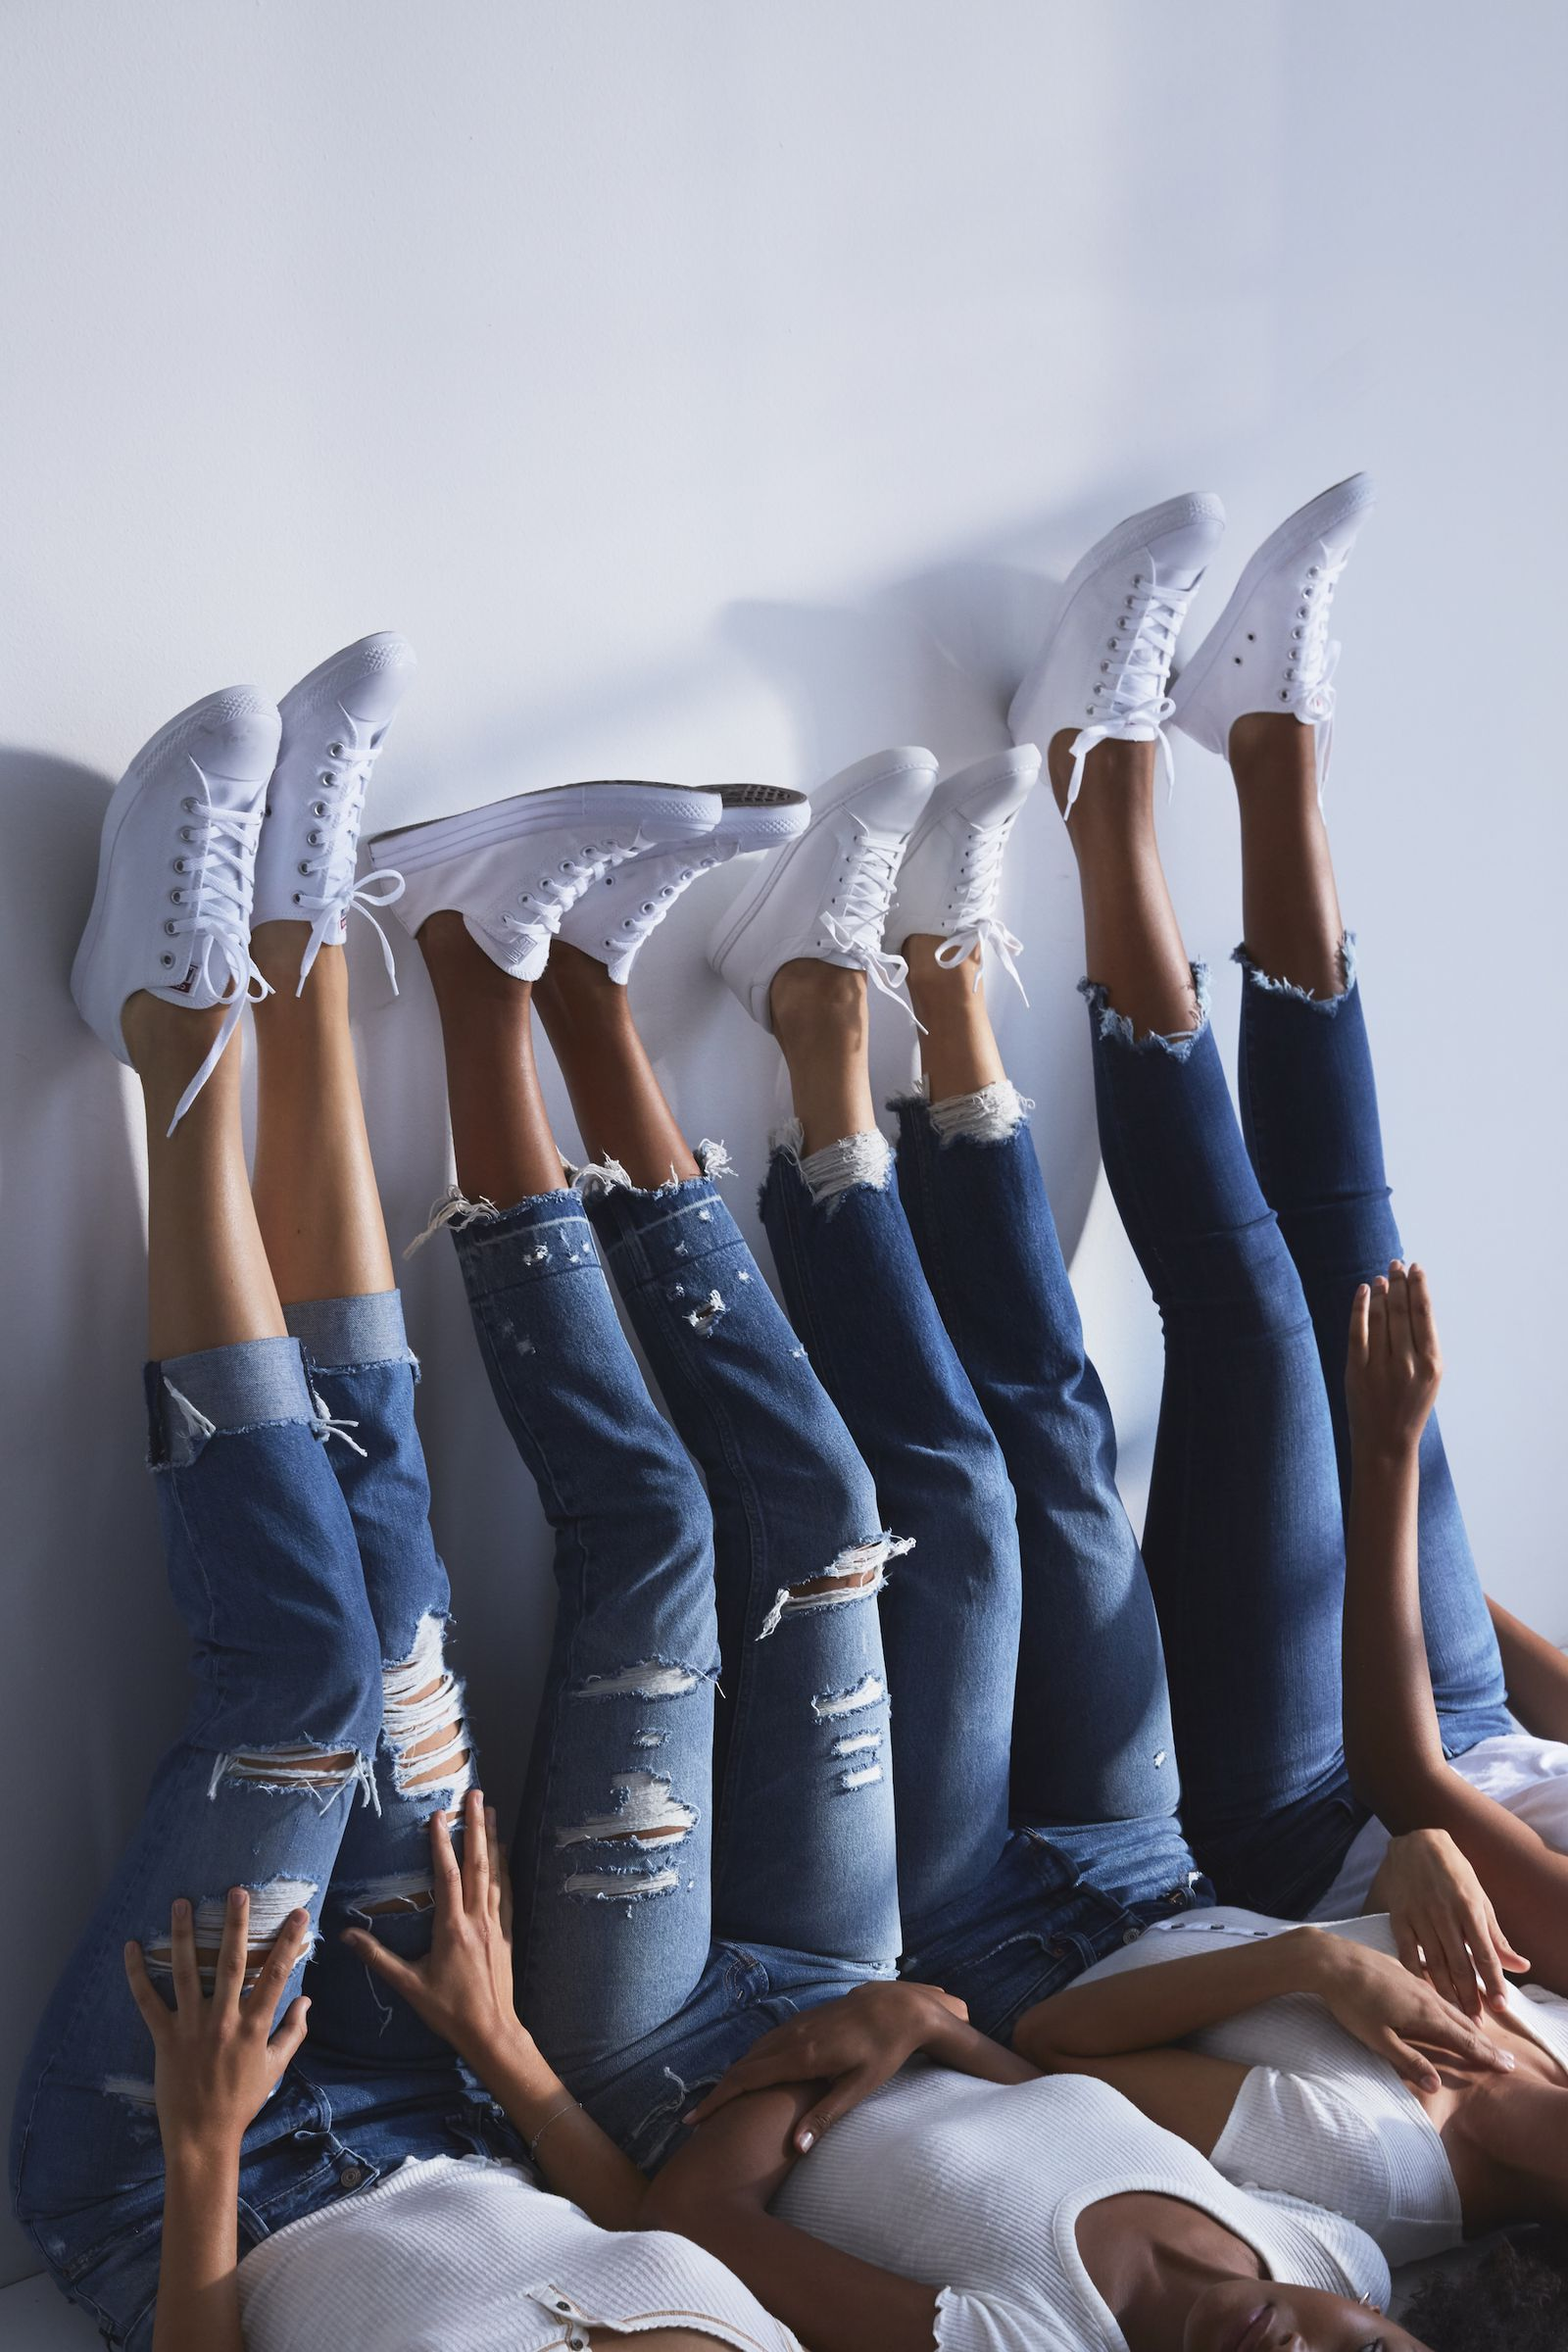 Abercrombie & Fitch Used Instagram to Cast Their Latest Campaign